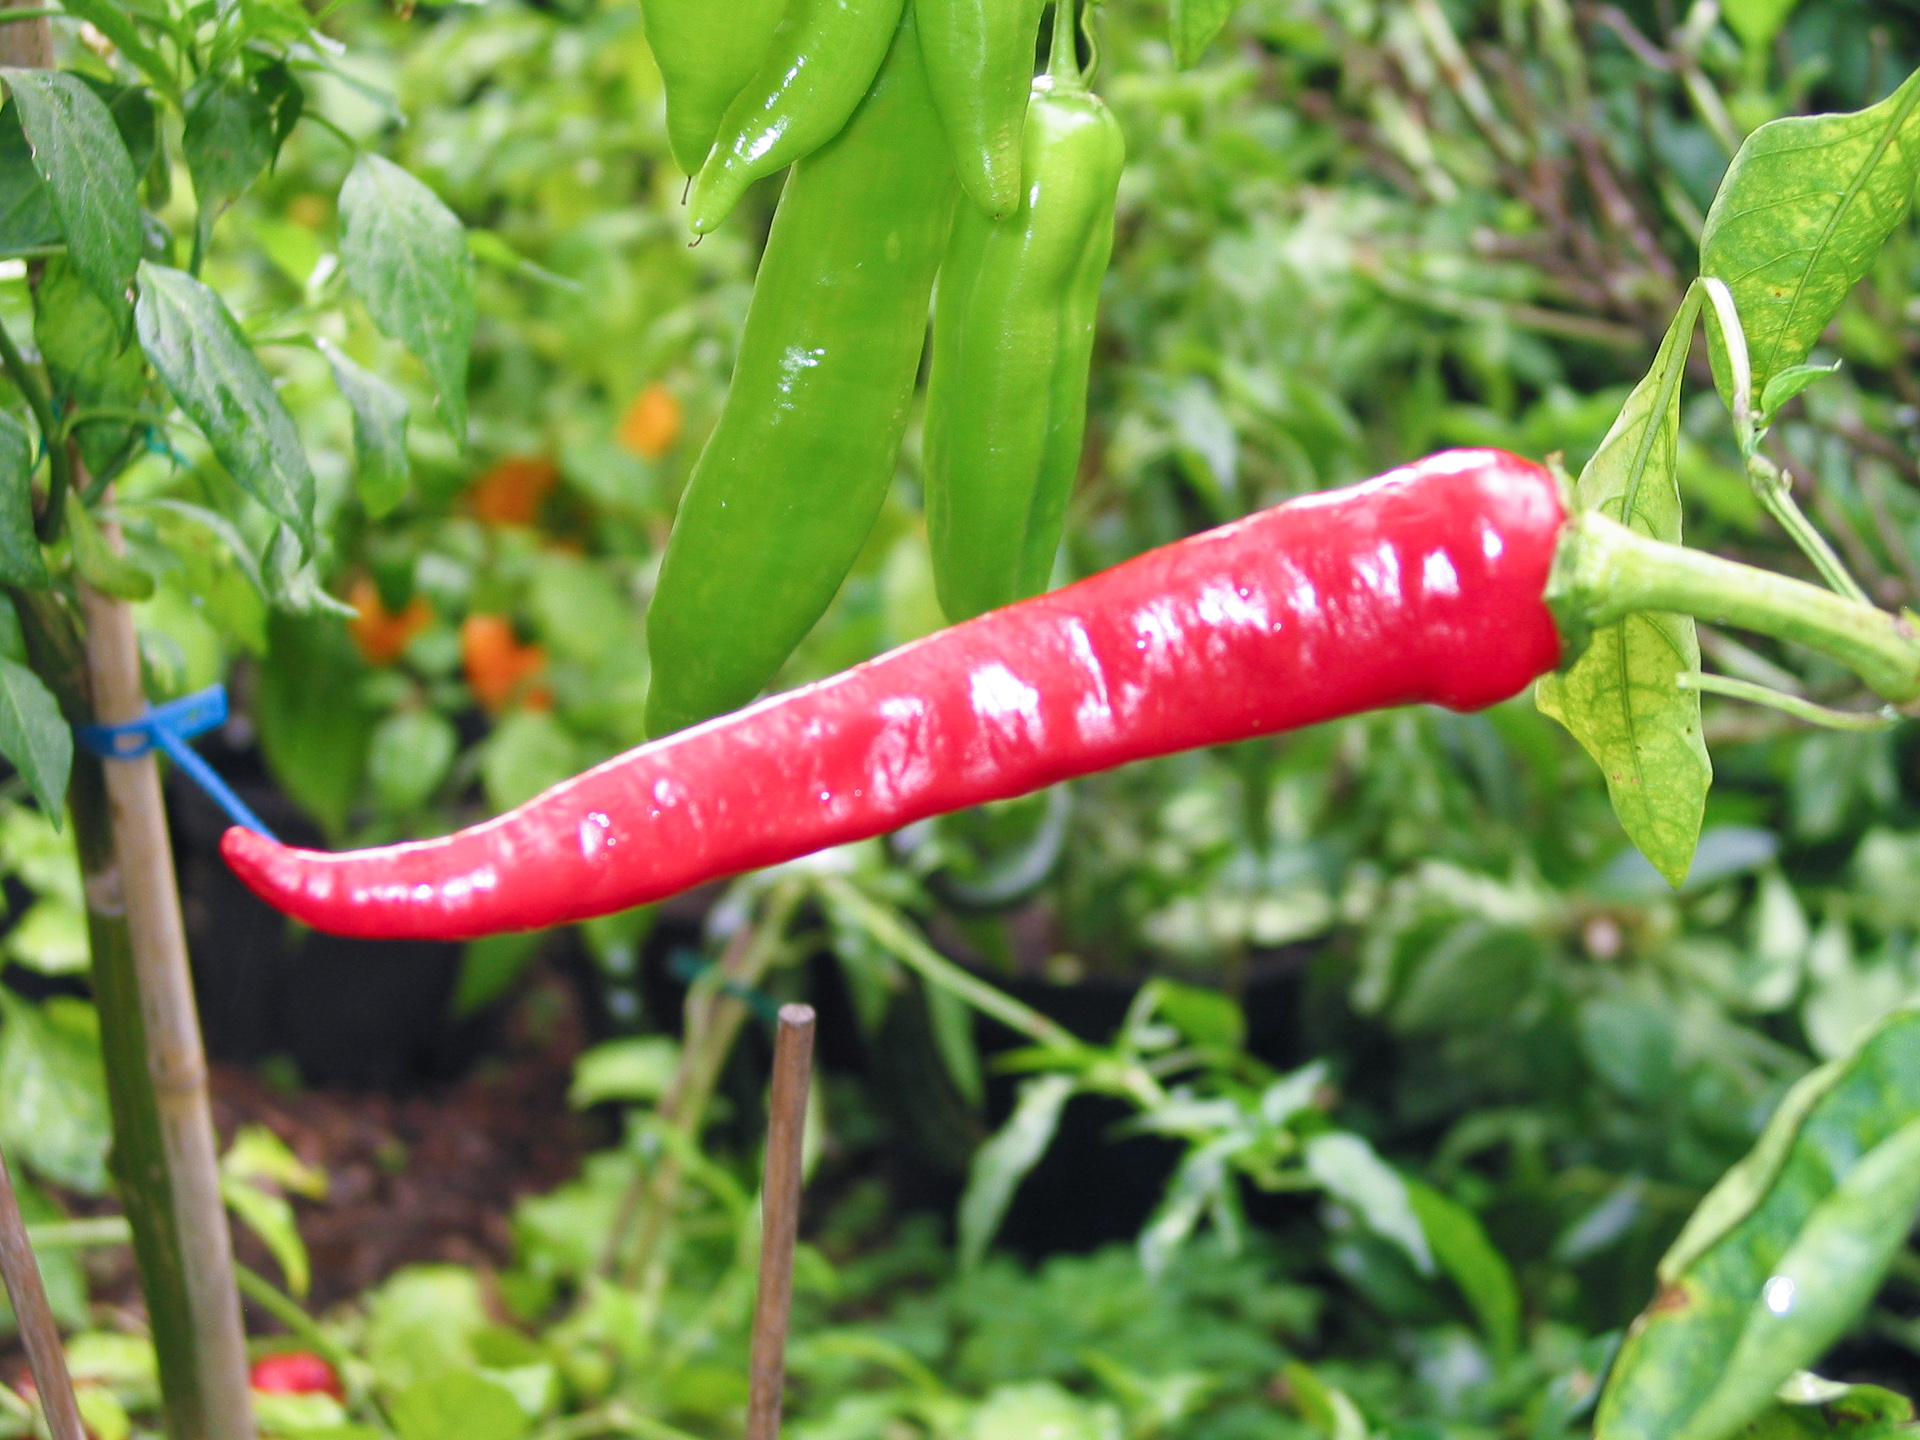 PI 487447 - Capsicum sp. - Chilisorte